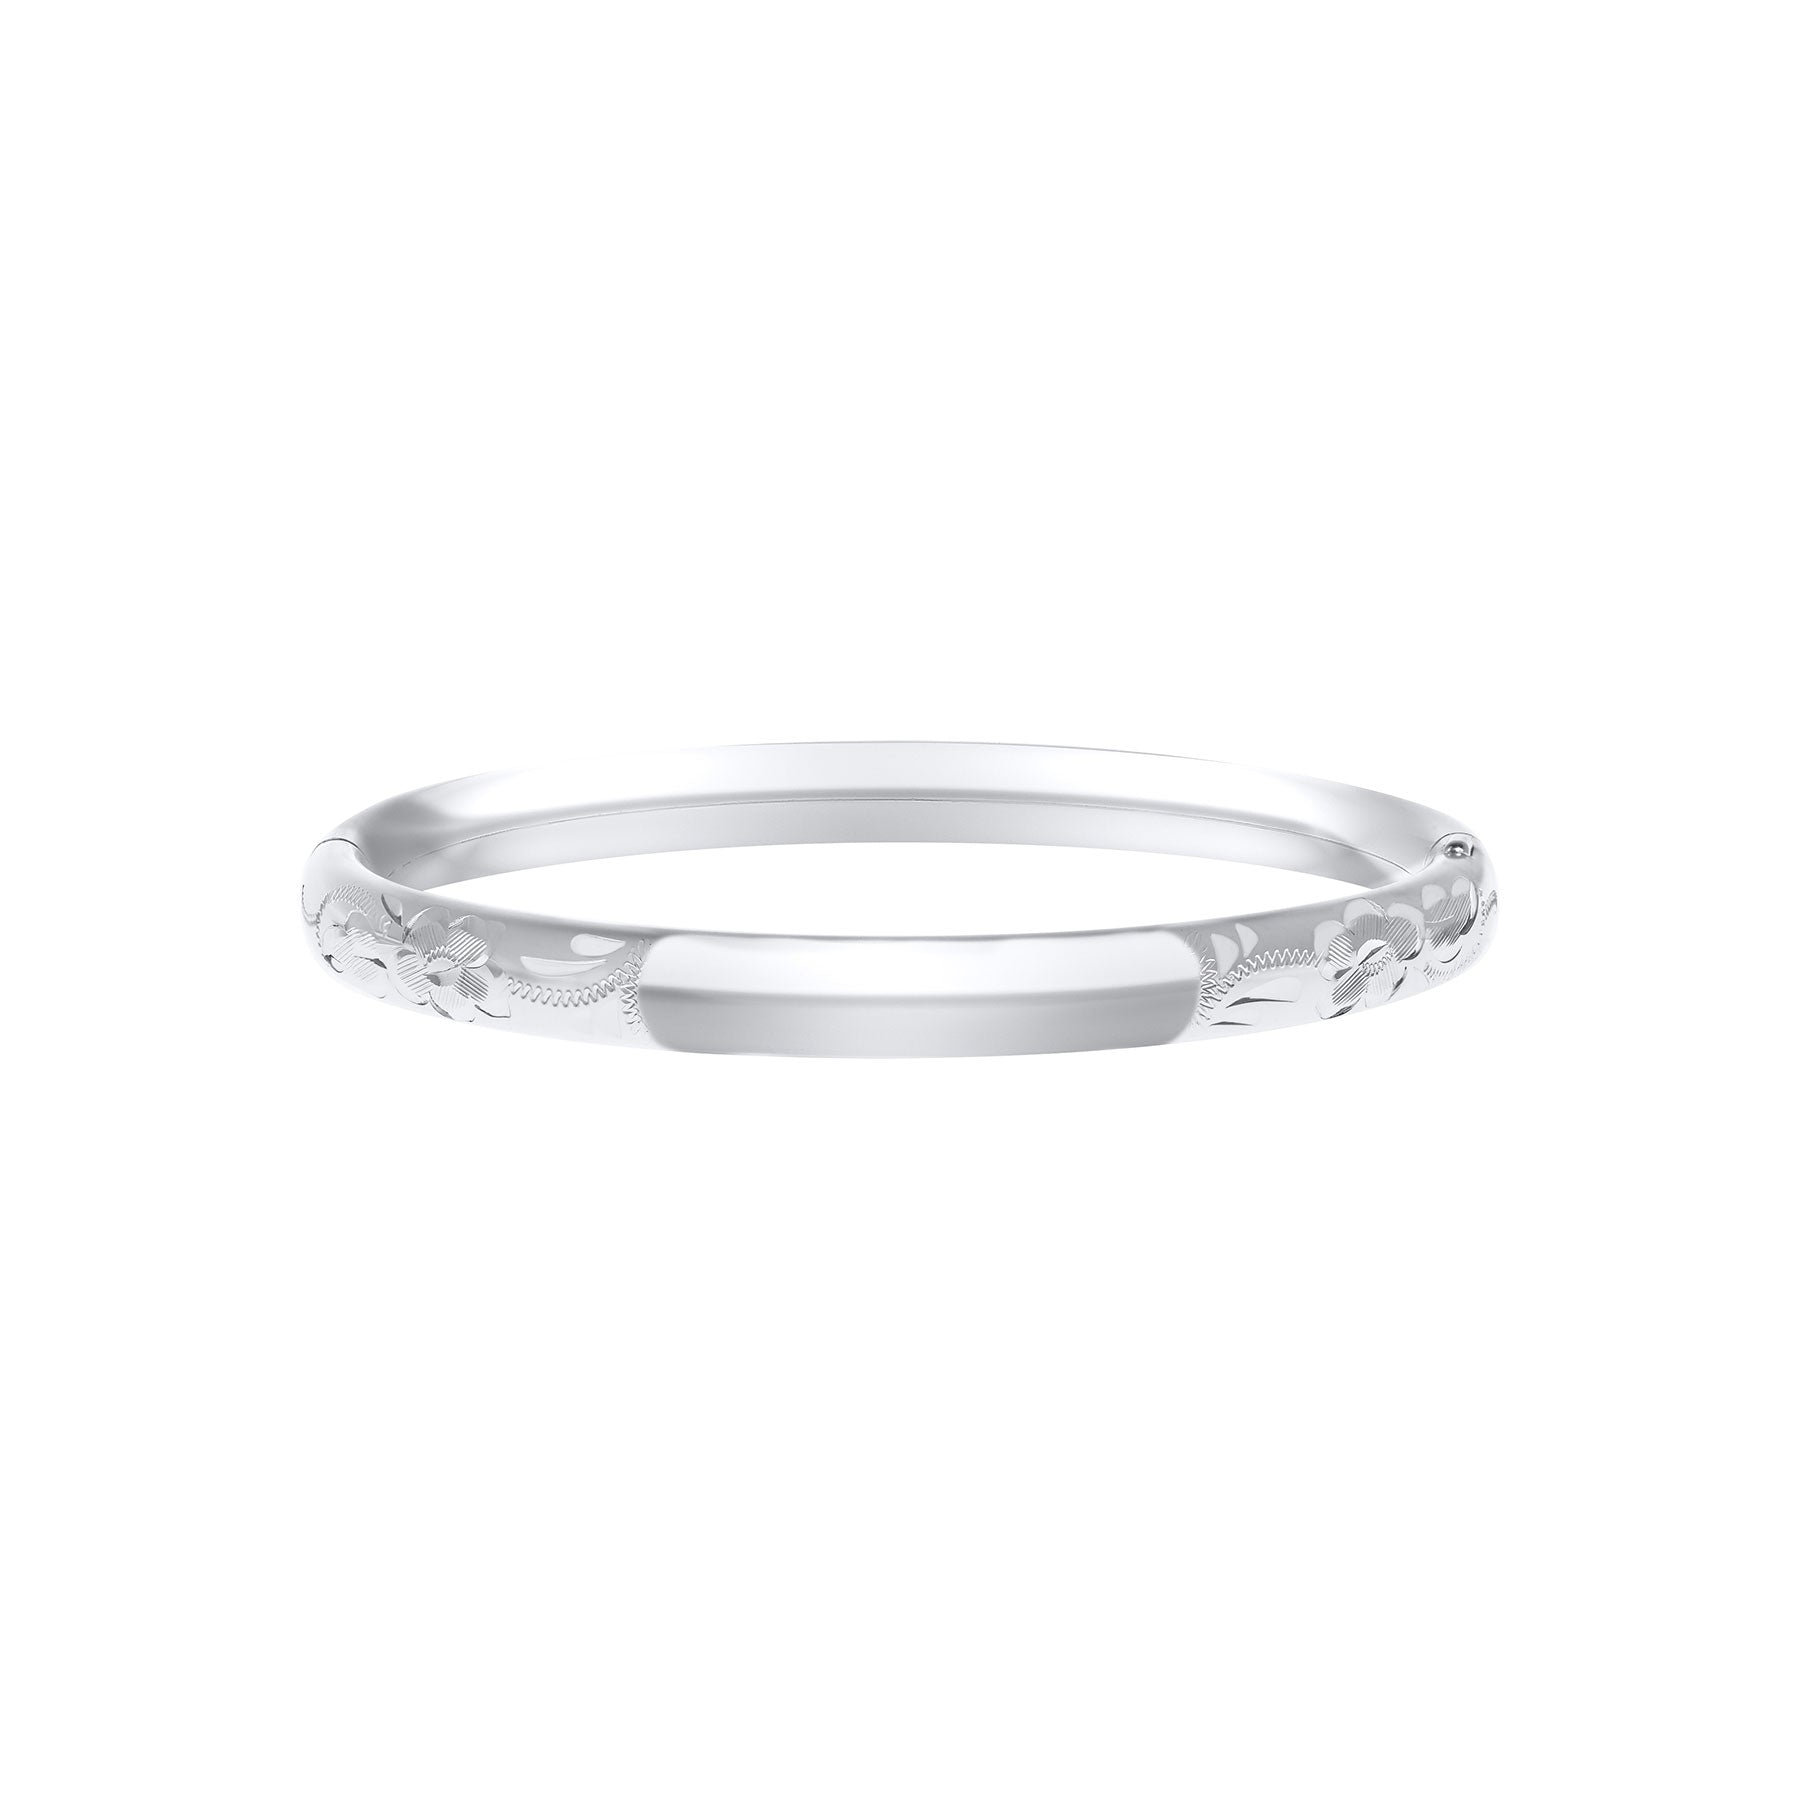 Baby Sterling Silver Engraved 5mm Bangle